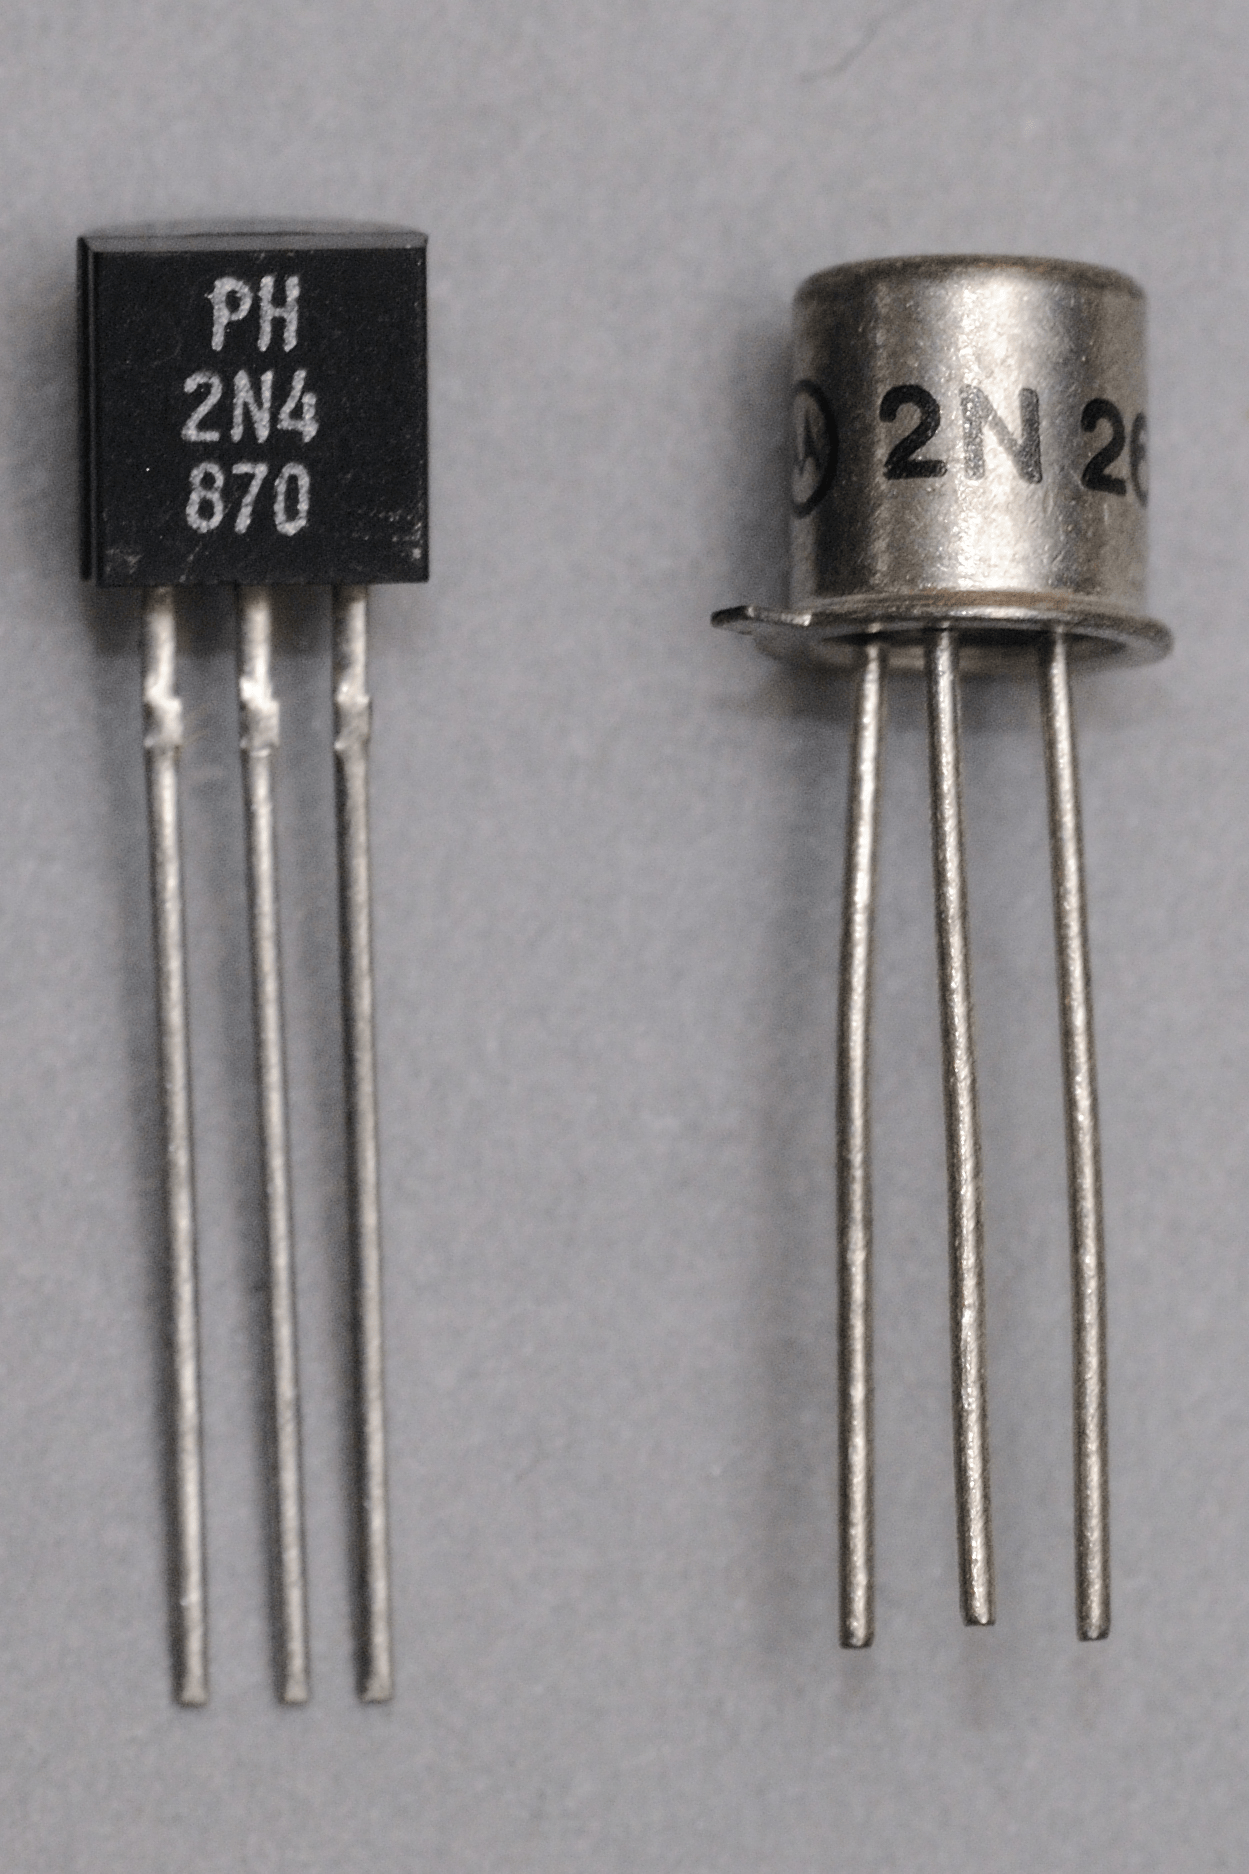 Programmable Unijunction Transistors Put Information Engineering360 In Circuit Tester For Scr Diodes And Are Three Terminal Thyristors That Triggered Into Conduction When The Voltage At Anode Exceeds